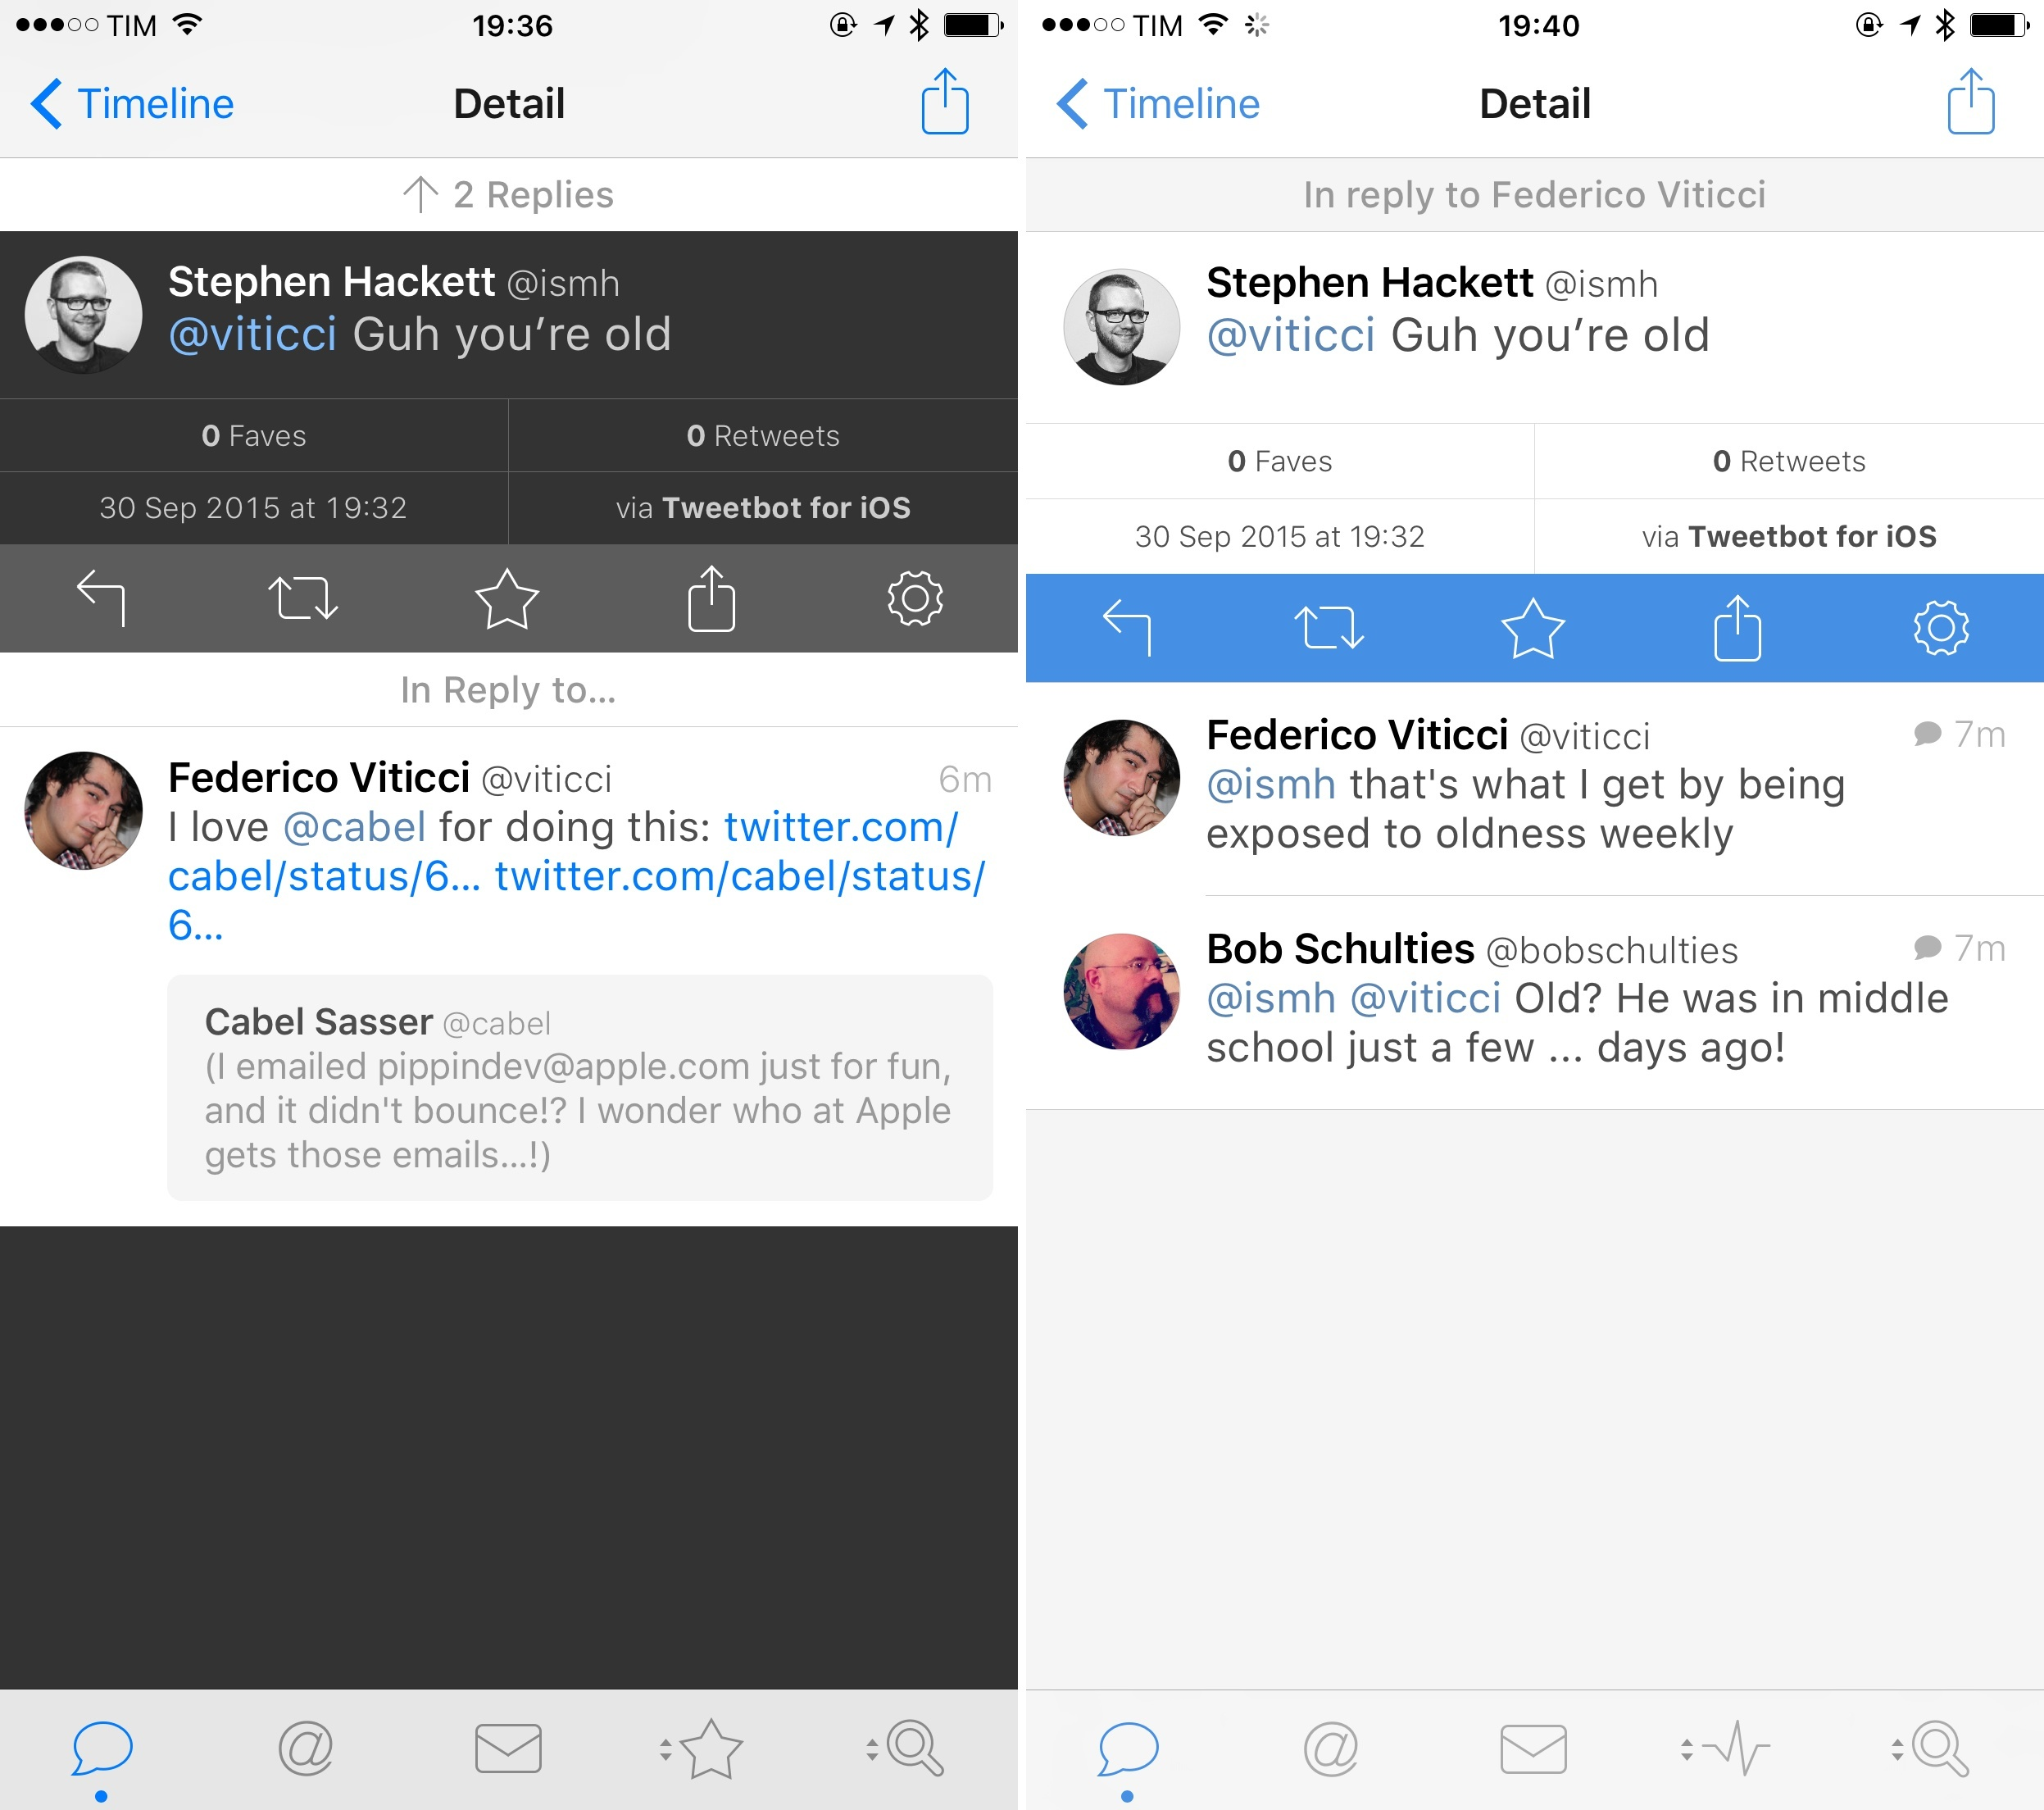 Tweetbot 3's detail view (left) and Tweetbot 4.